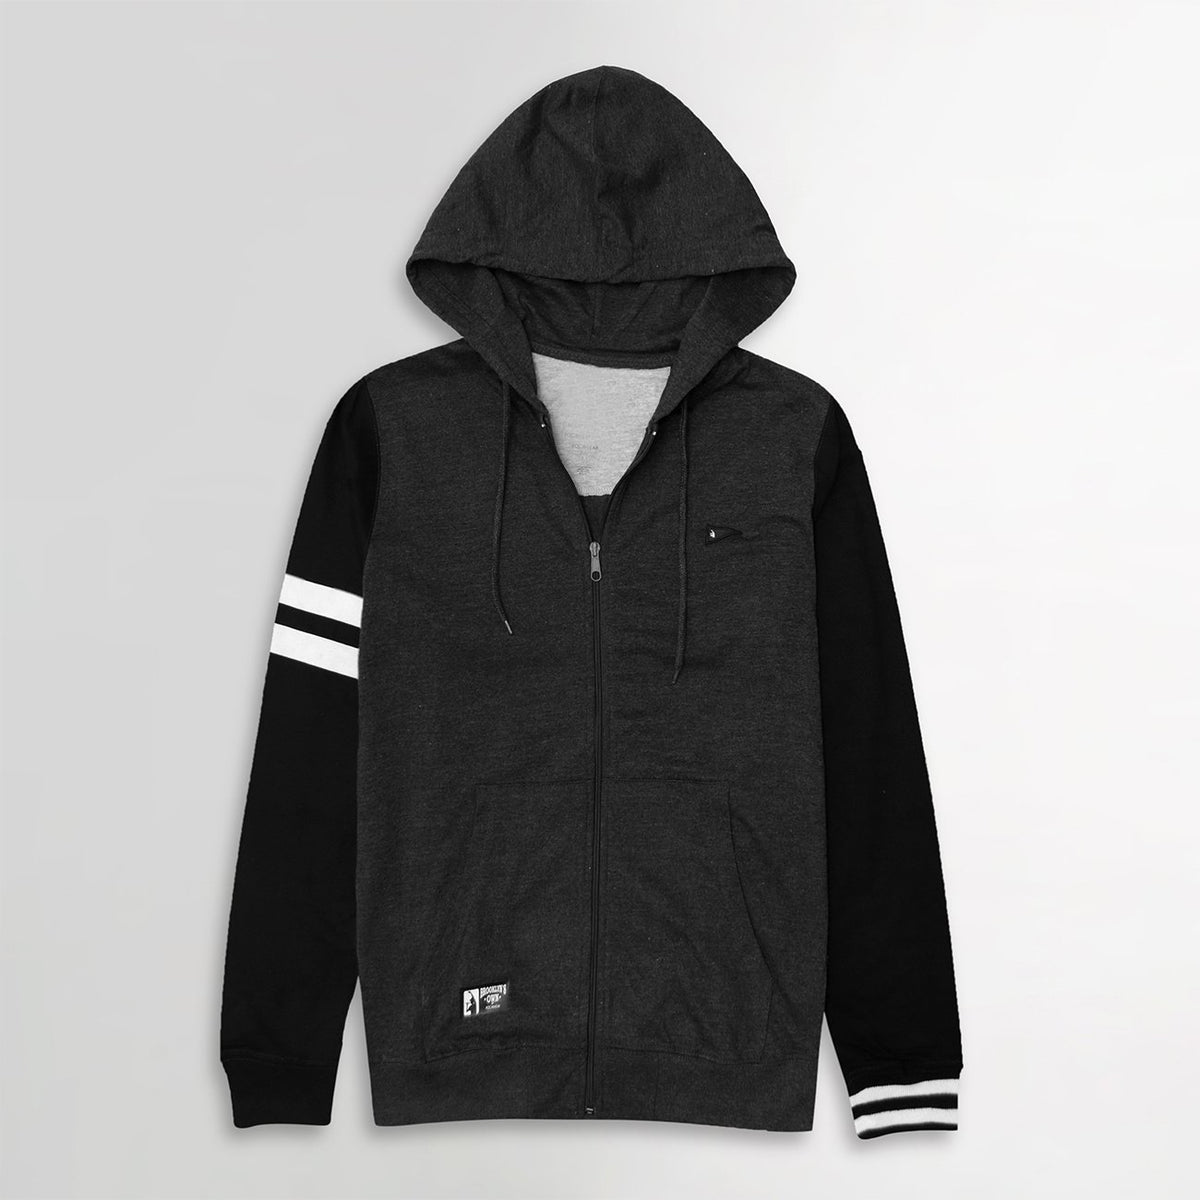 Men Signature Stripe Print & Left Chest Embroidery Zipper Hoodie (BK-11063)